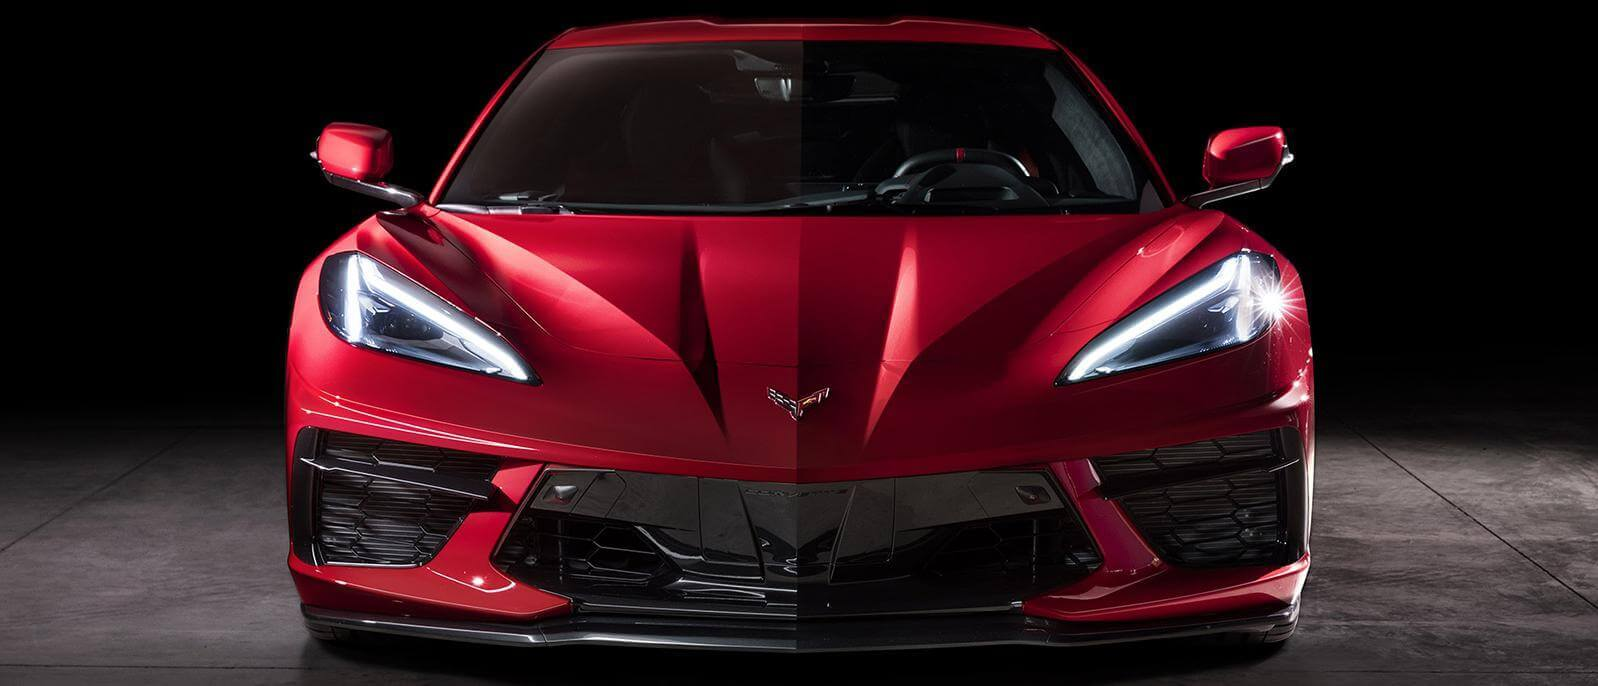 2020 Corvette at AV Chevrolet